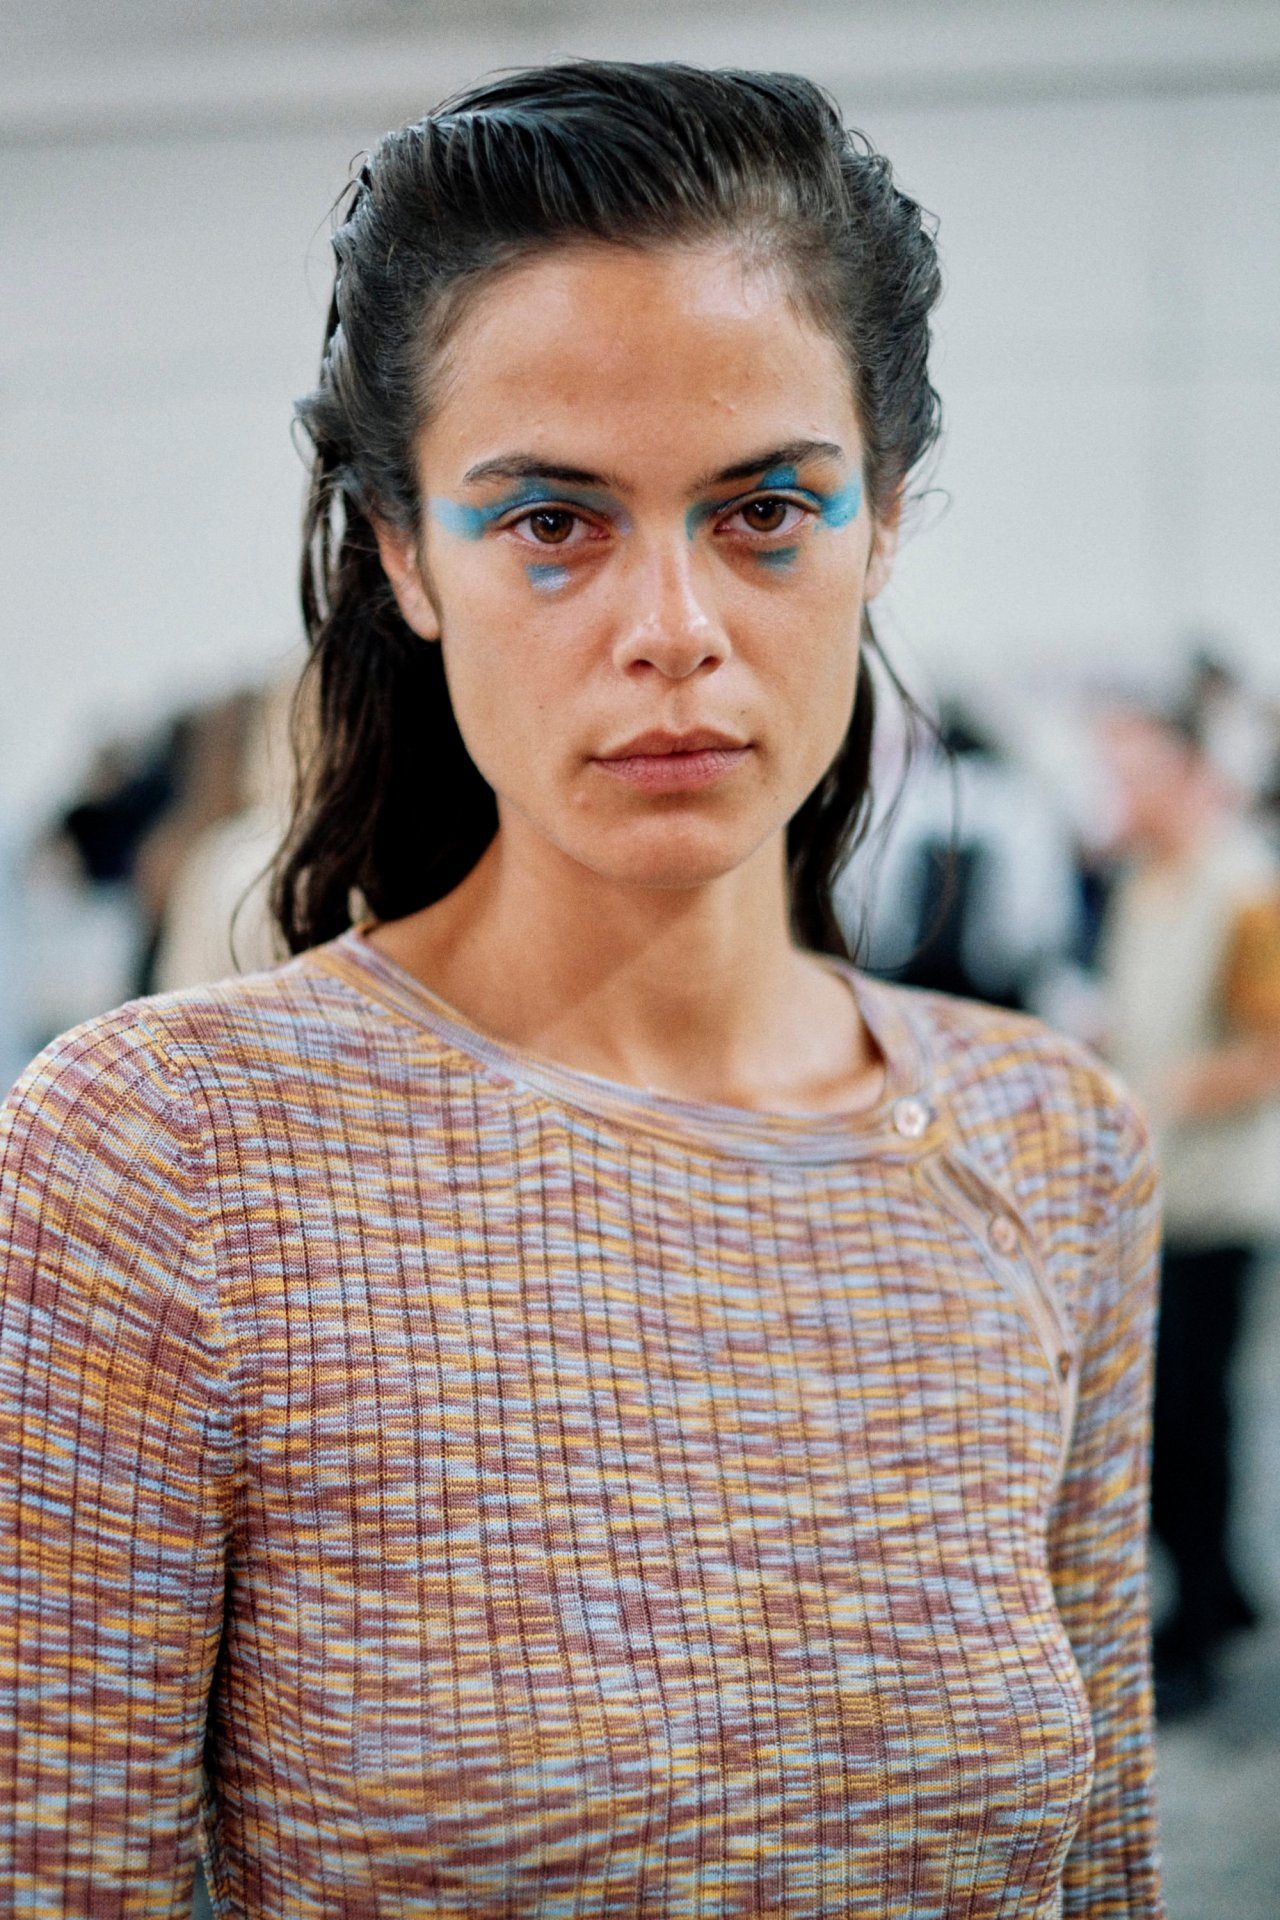 Euphoria! 8 make-up looks from New York Fashion Week inspired by the hit show